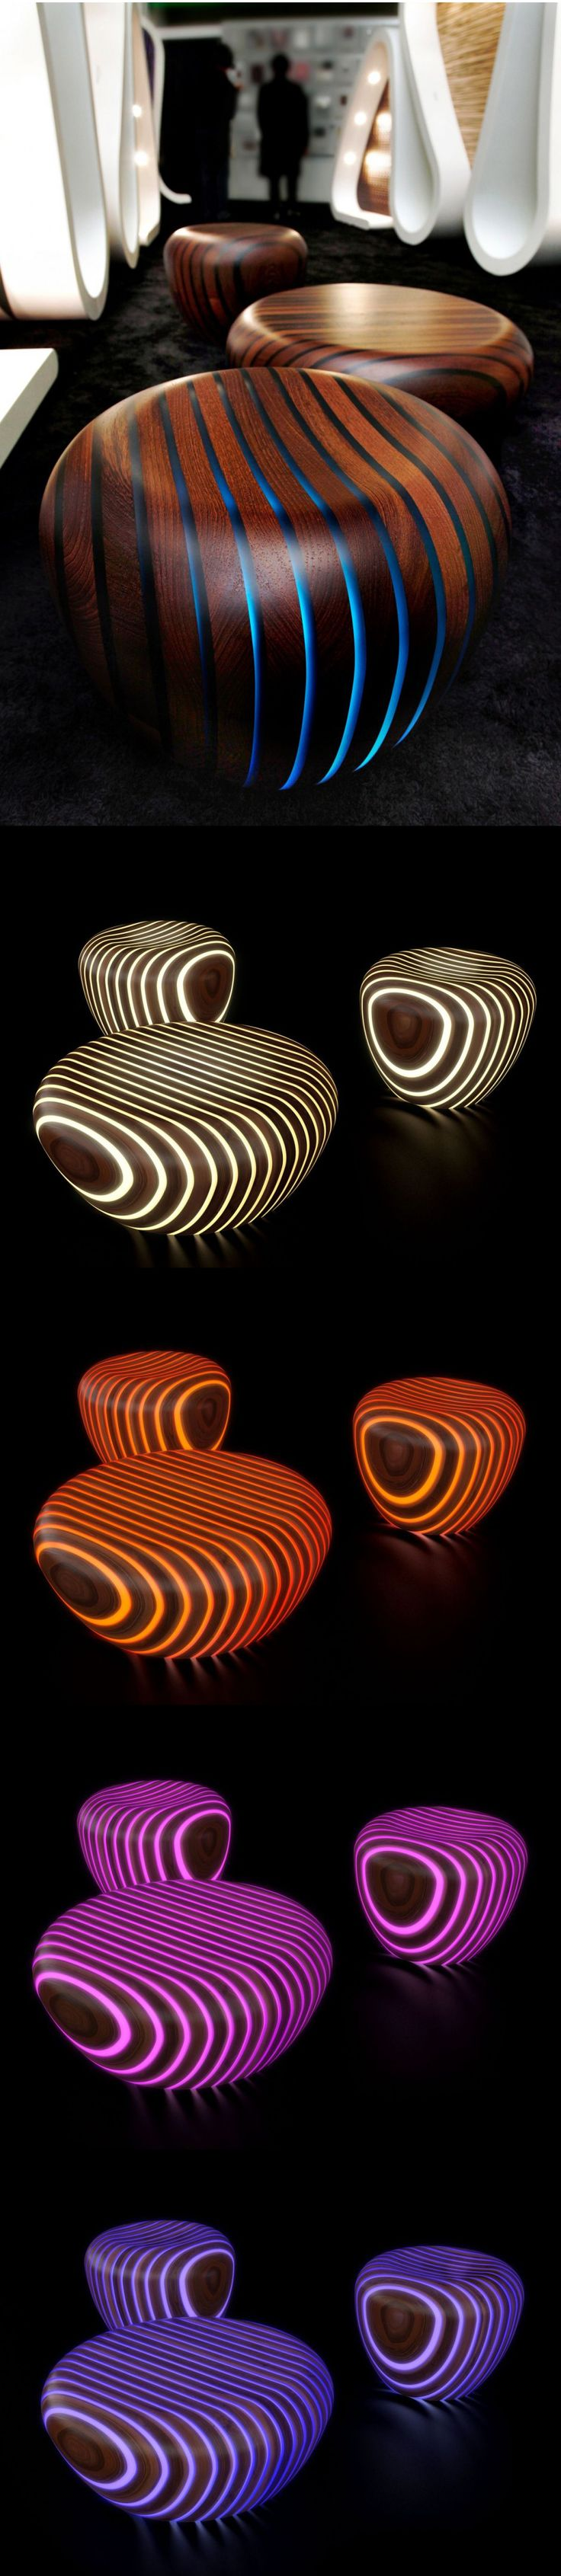 Hocker aus Holz die von innen heraus leuchten. Einfach super anzusehen ... Bright Woods Collection by Giancarlo Zema for Avanzini Group